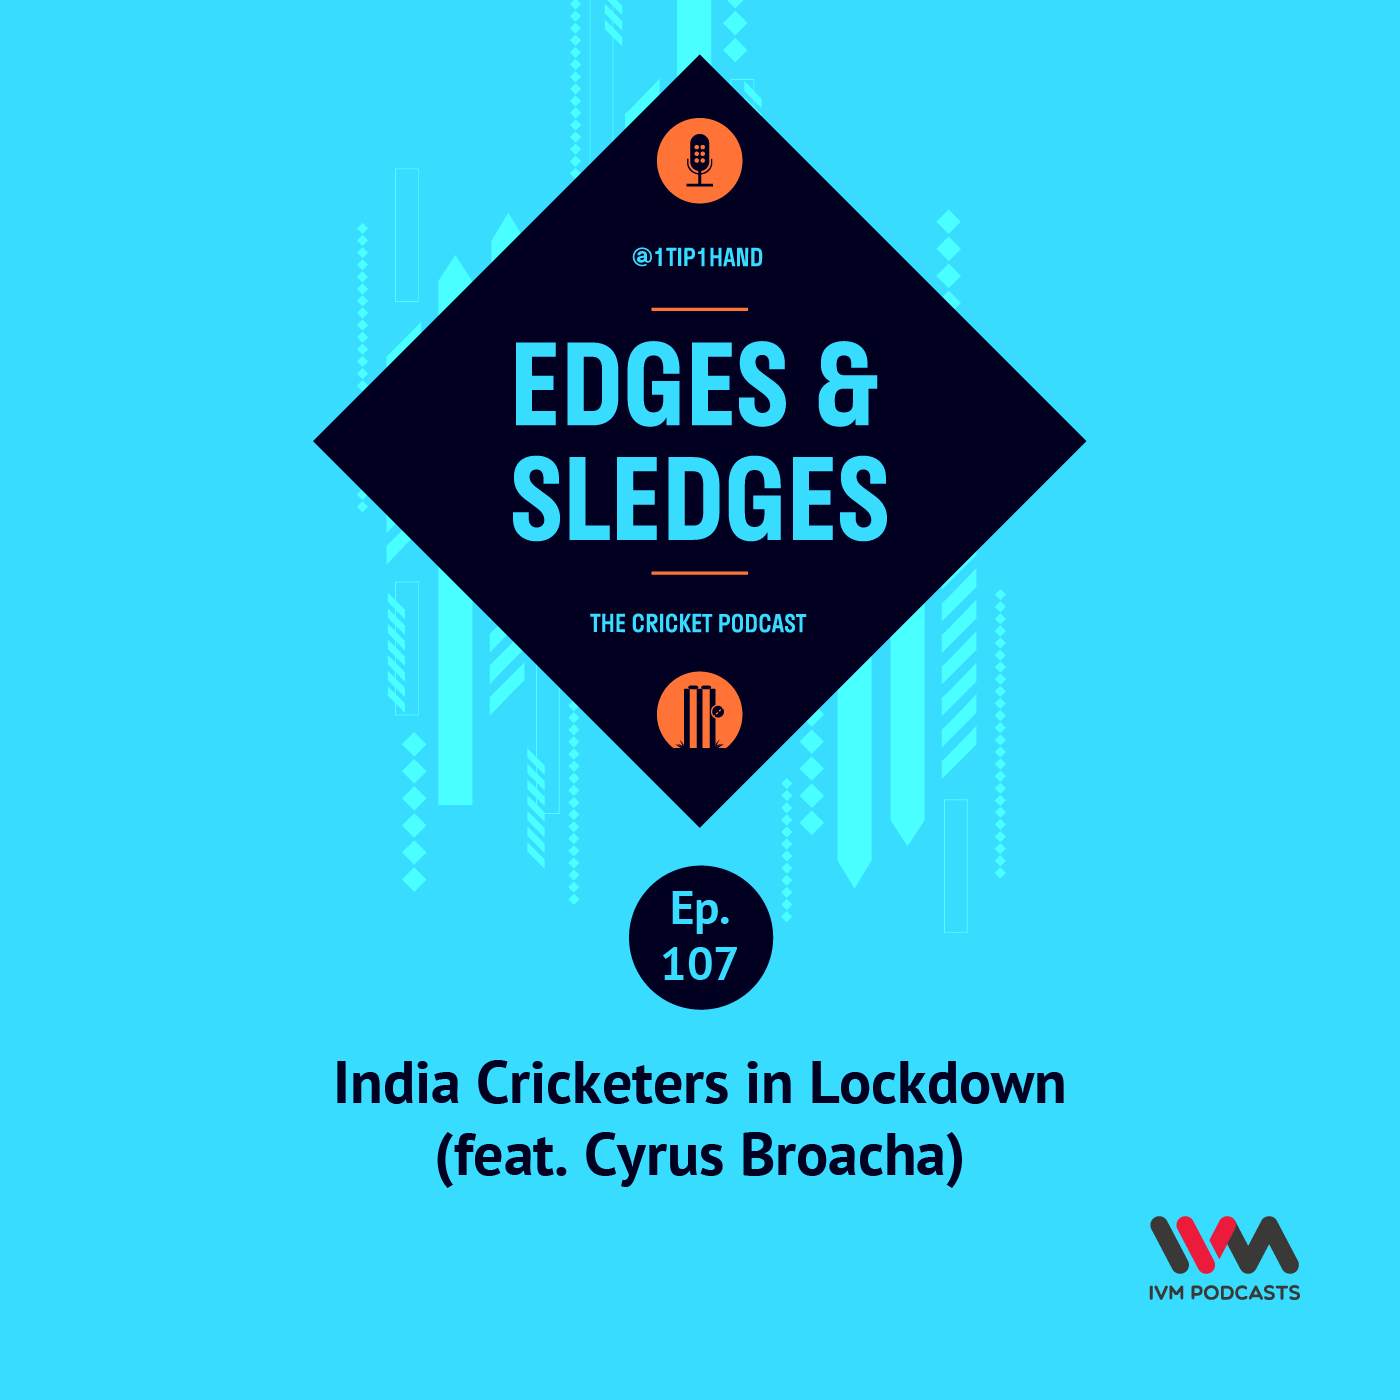 Ep. 107: India Cricketers in Lockdown (feat. Cyrus Broacha)